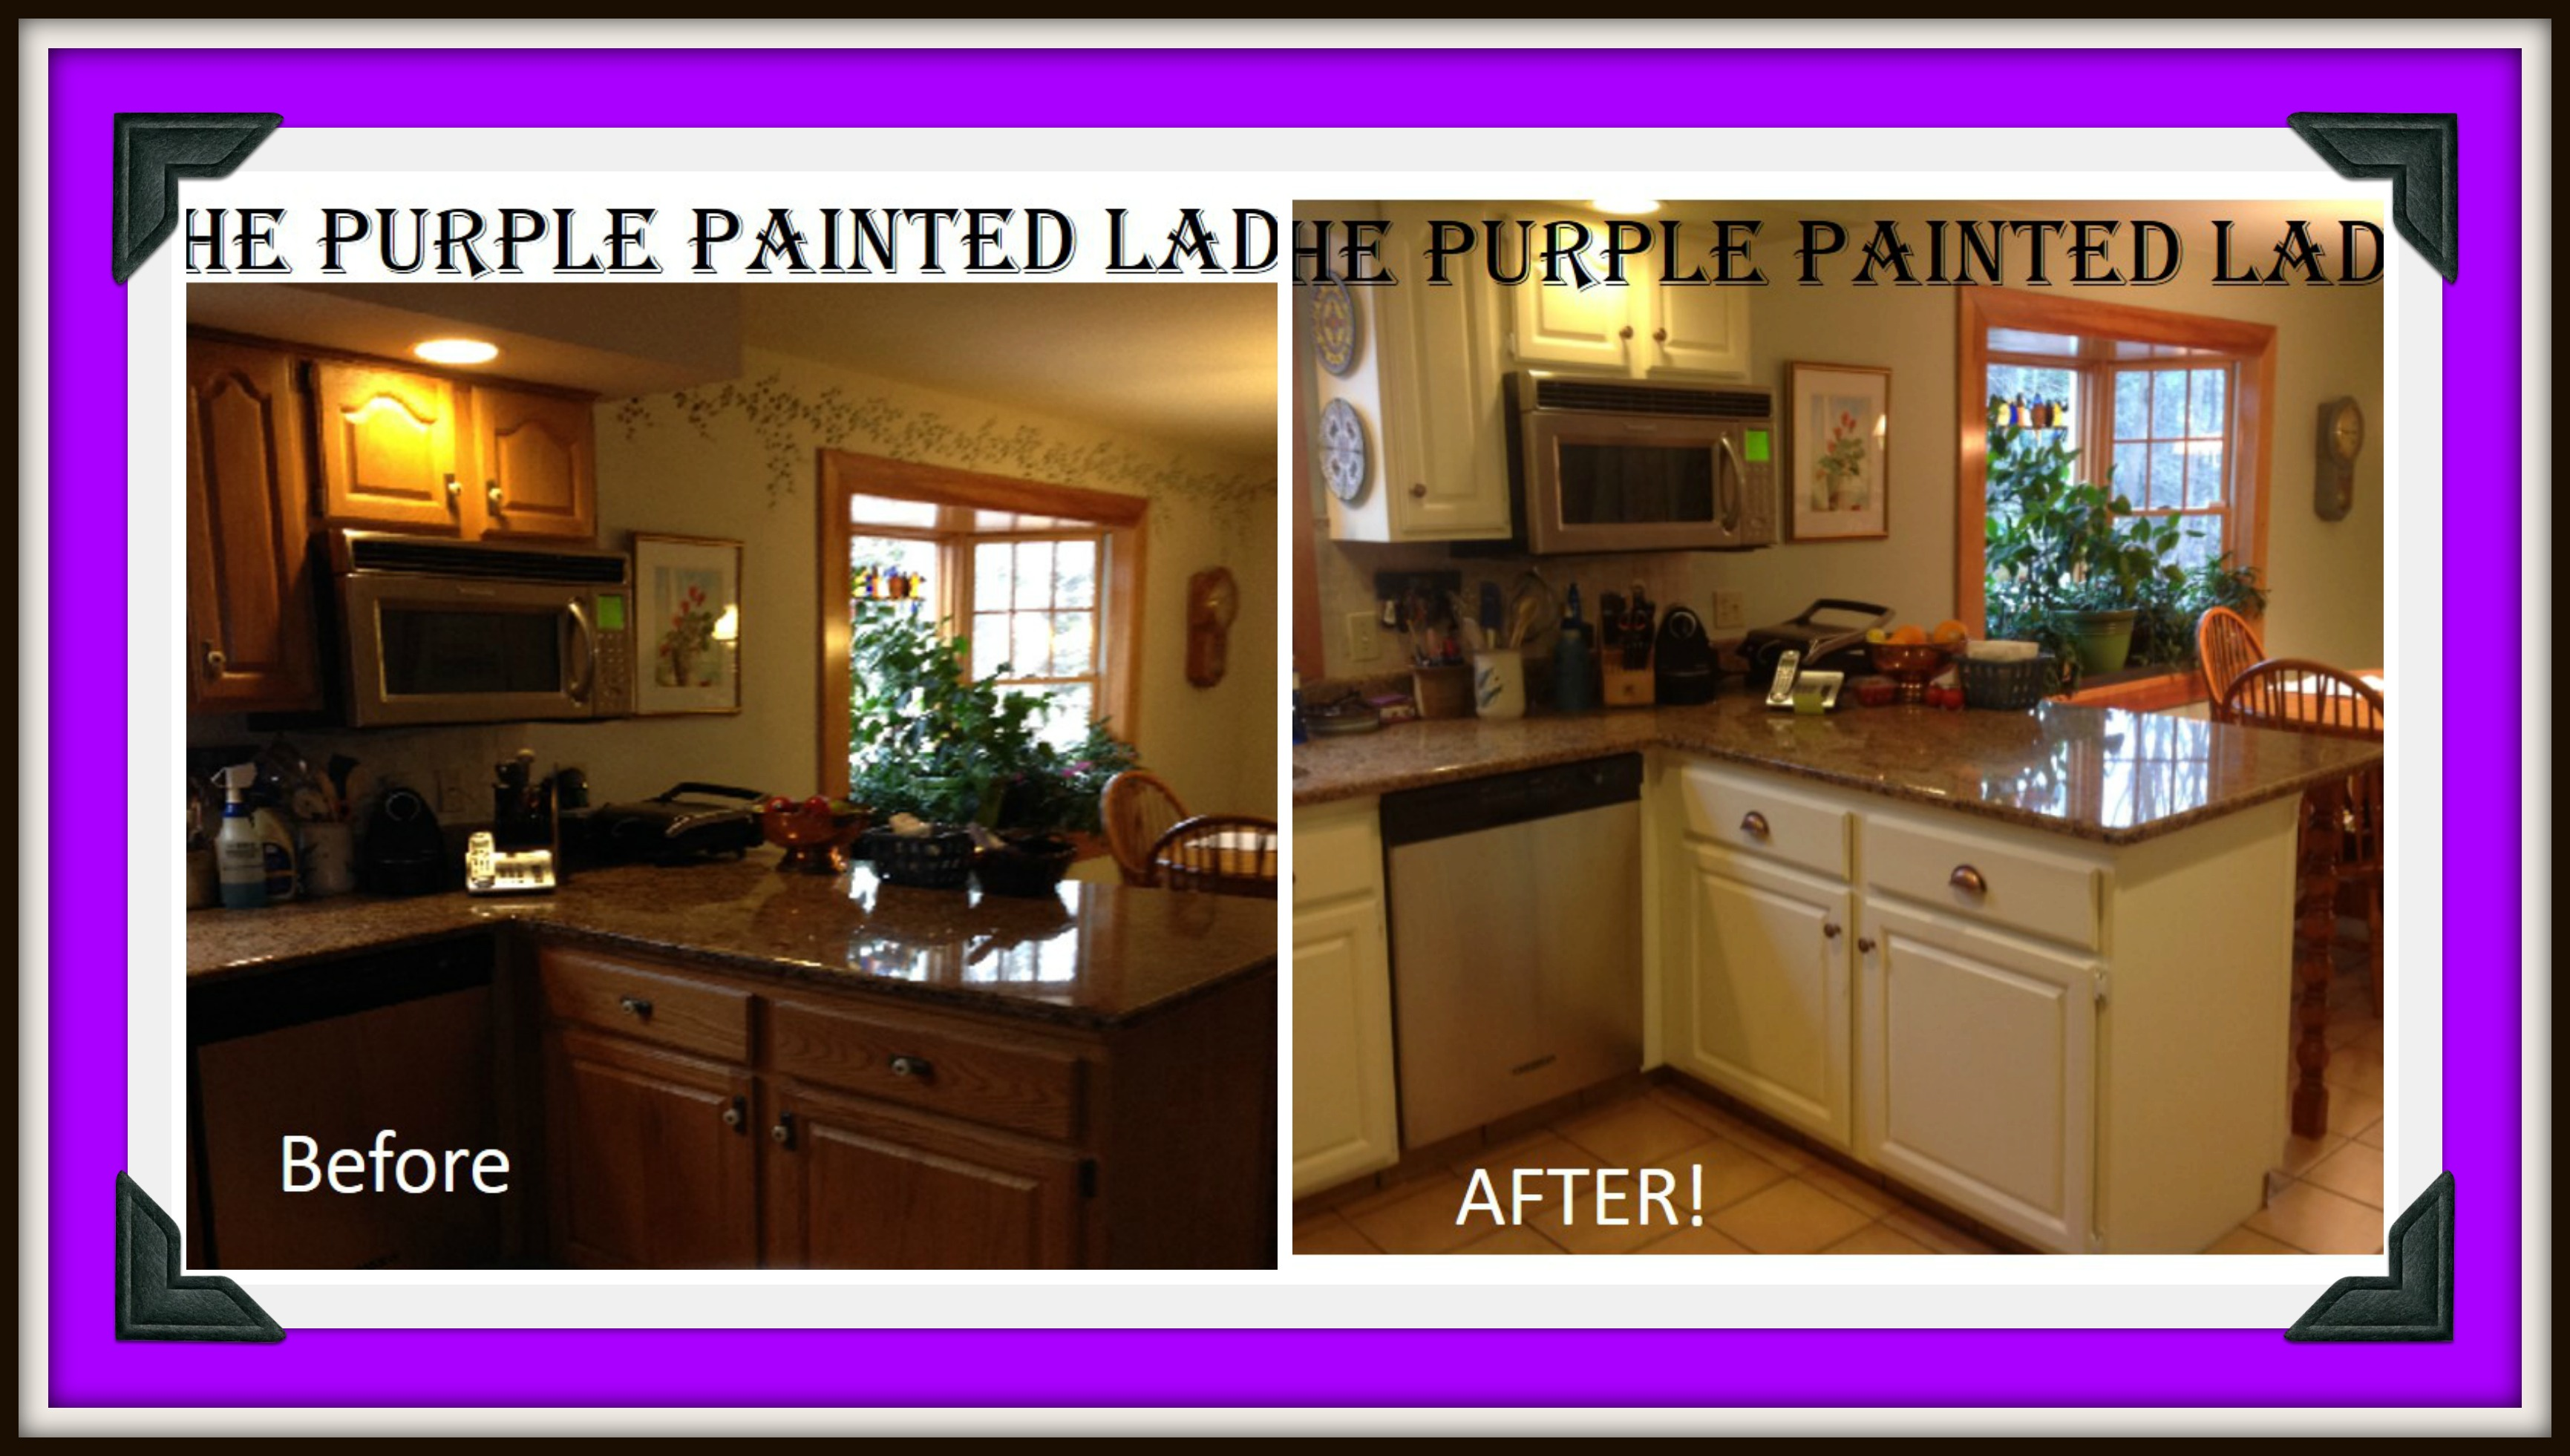 beautiful What To Do With Old Kitchen Cabinets #10: PicMonkey Collage The Purple Painted Lady Painted Caninets susan Old White